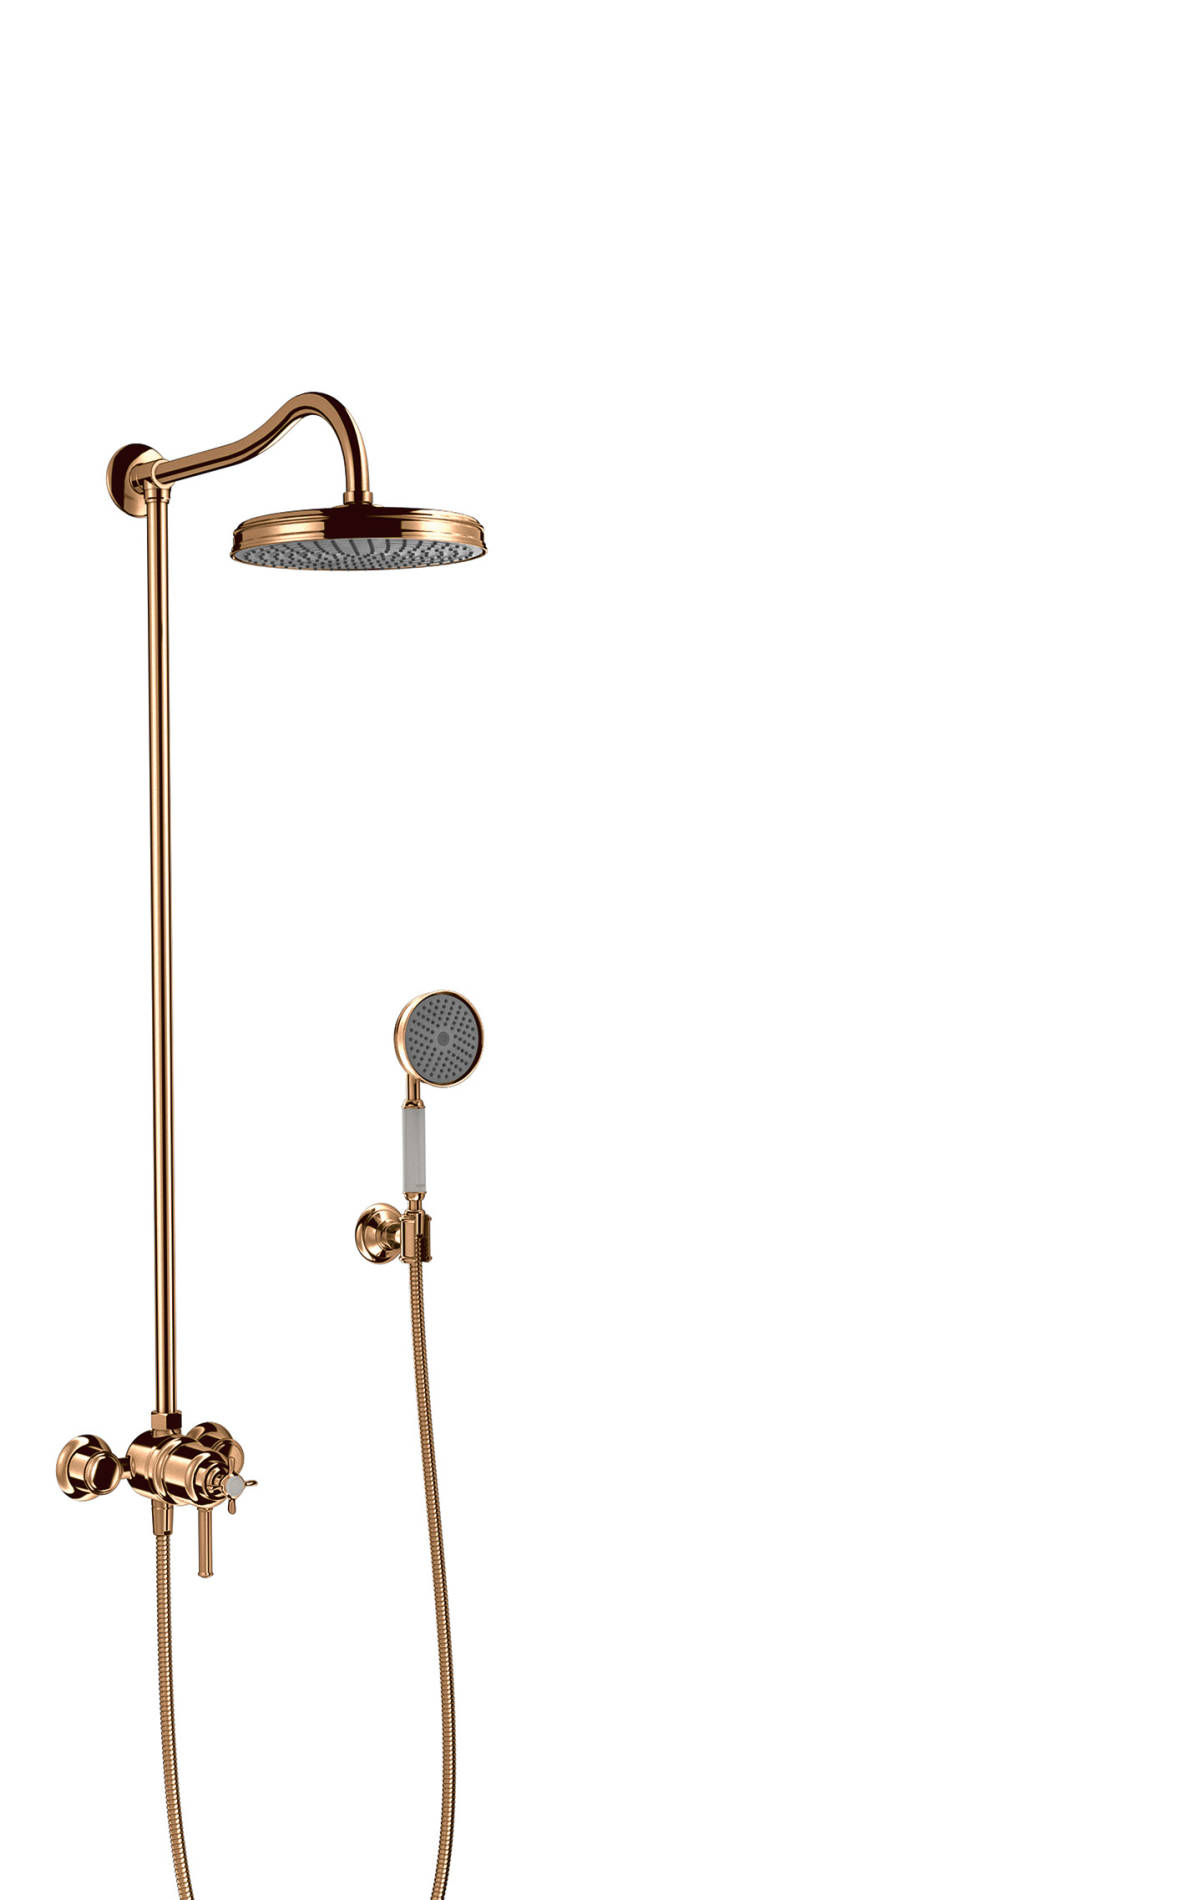 Showerpipe with thermostatic mixer and 1jet overhead shower, Polished Bronze, 16570130